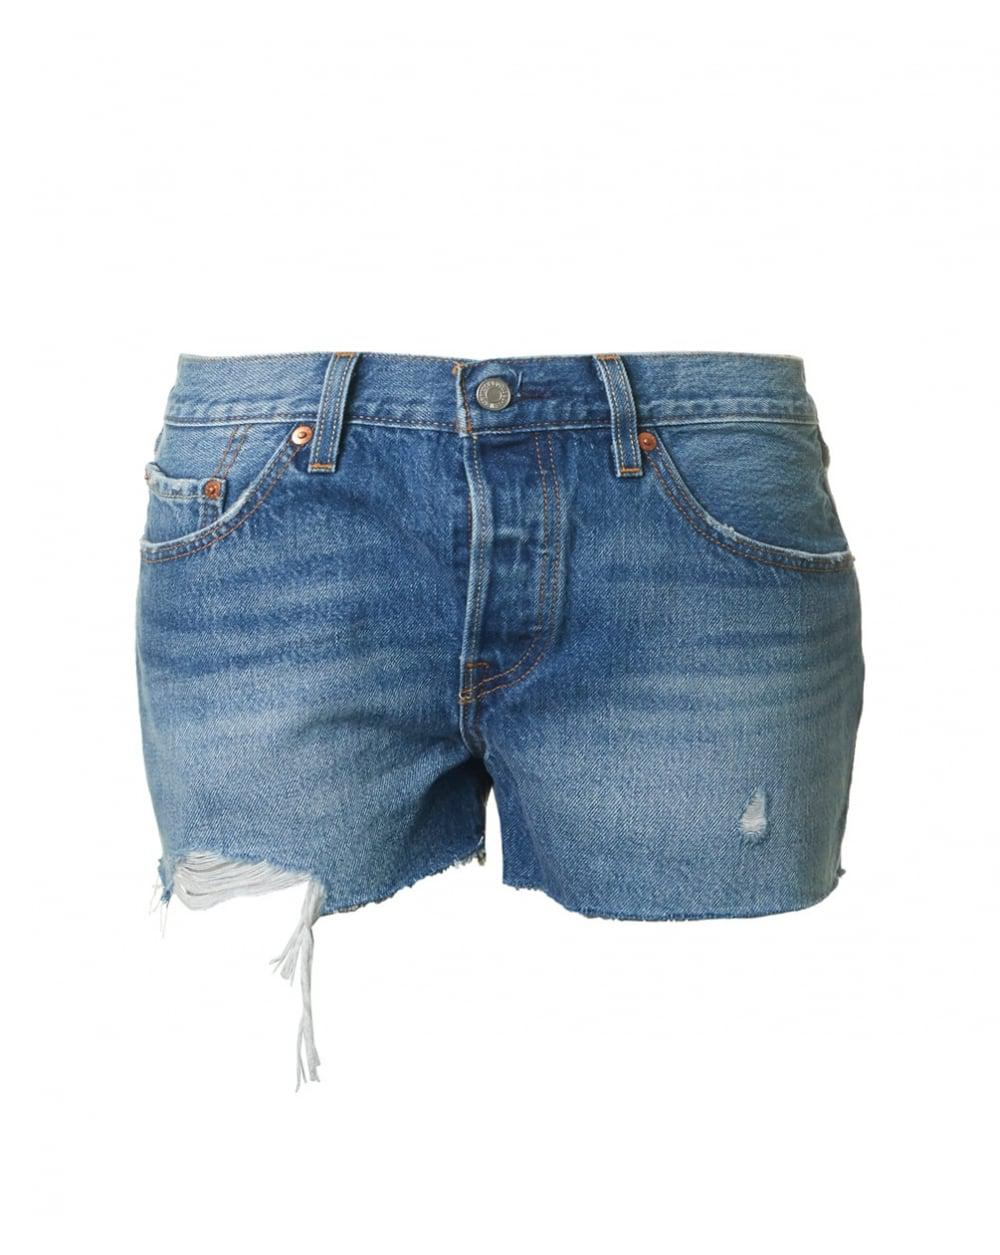 887de7a4 Lyst - Levi's 501 Frayed Hem Shorts in Blue